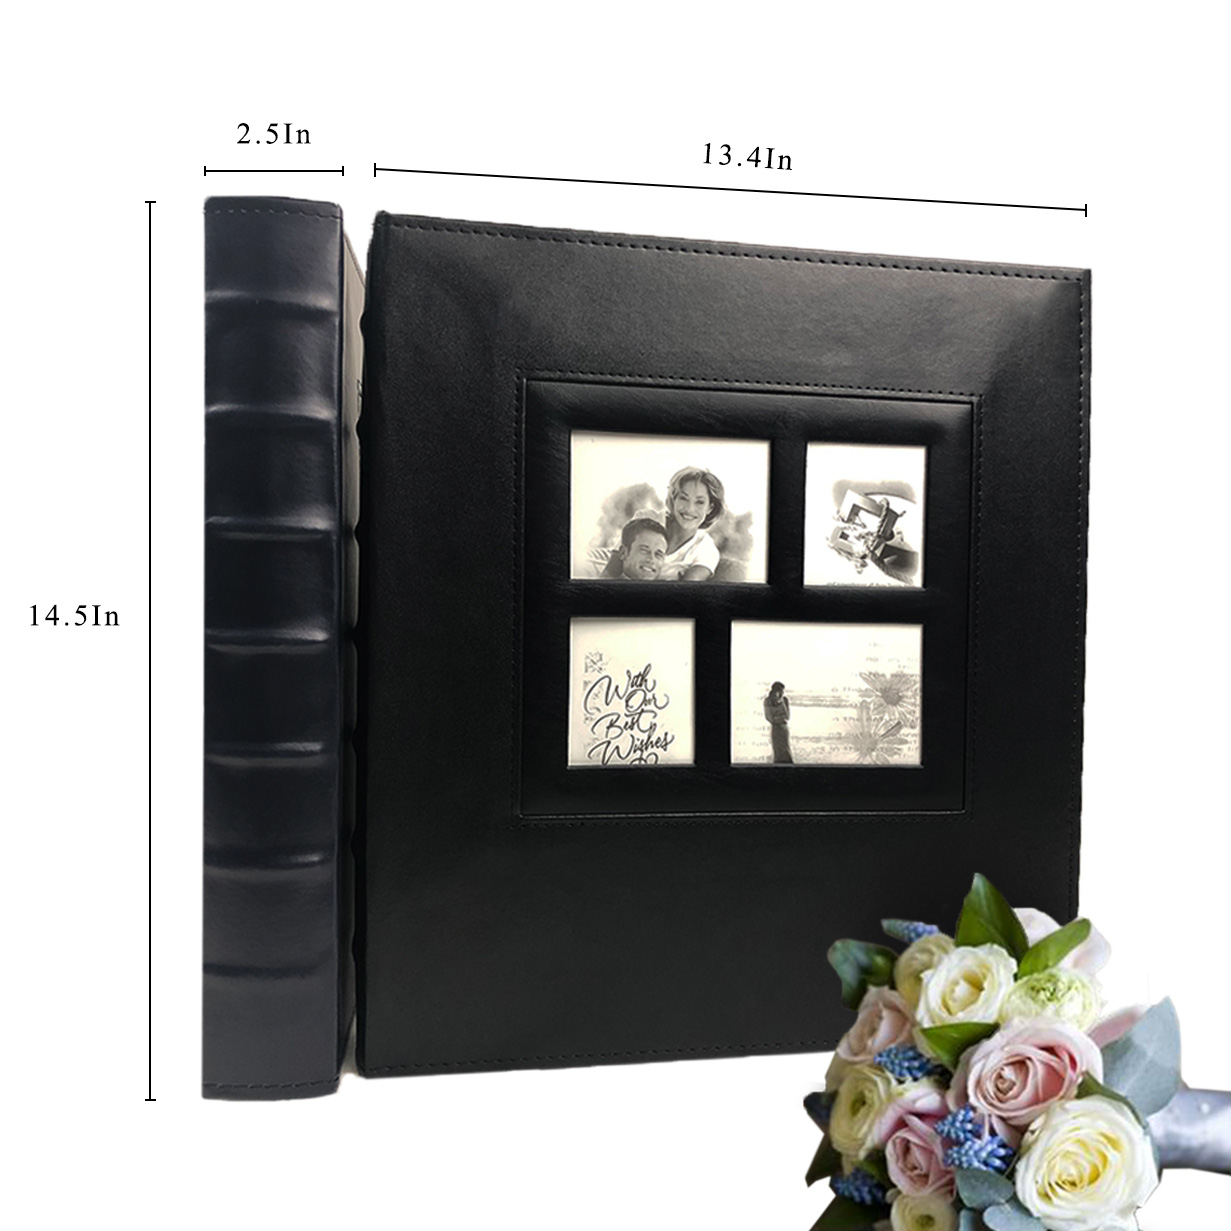 Recutms Photo Album 4x6 600 Photos Black Pages Large Capacity Leather Cover Wedding Family Photo Albums Holds 600 Horizontal Photo Albums Aliexpress